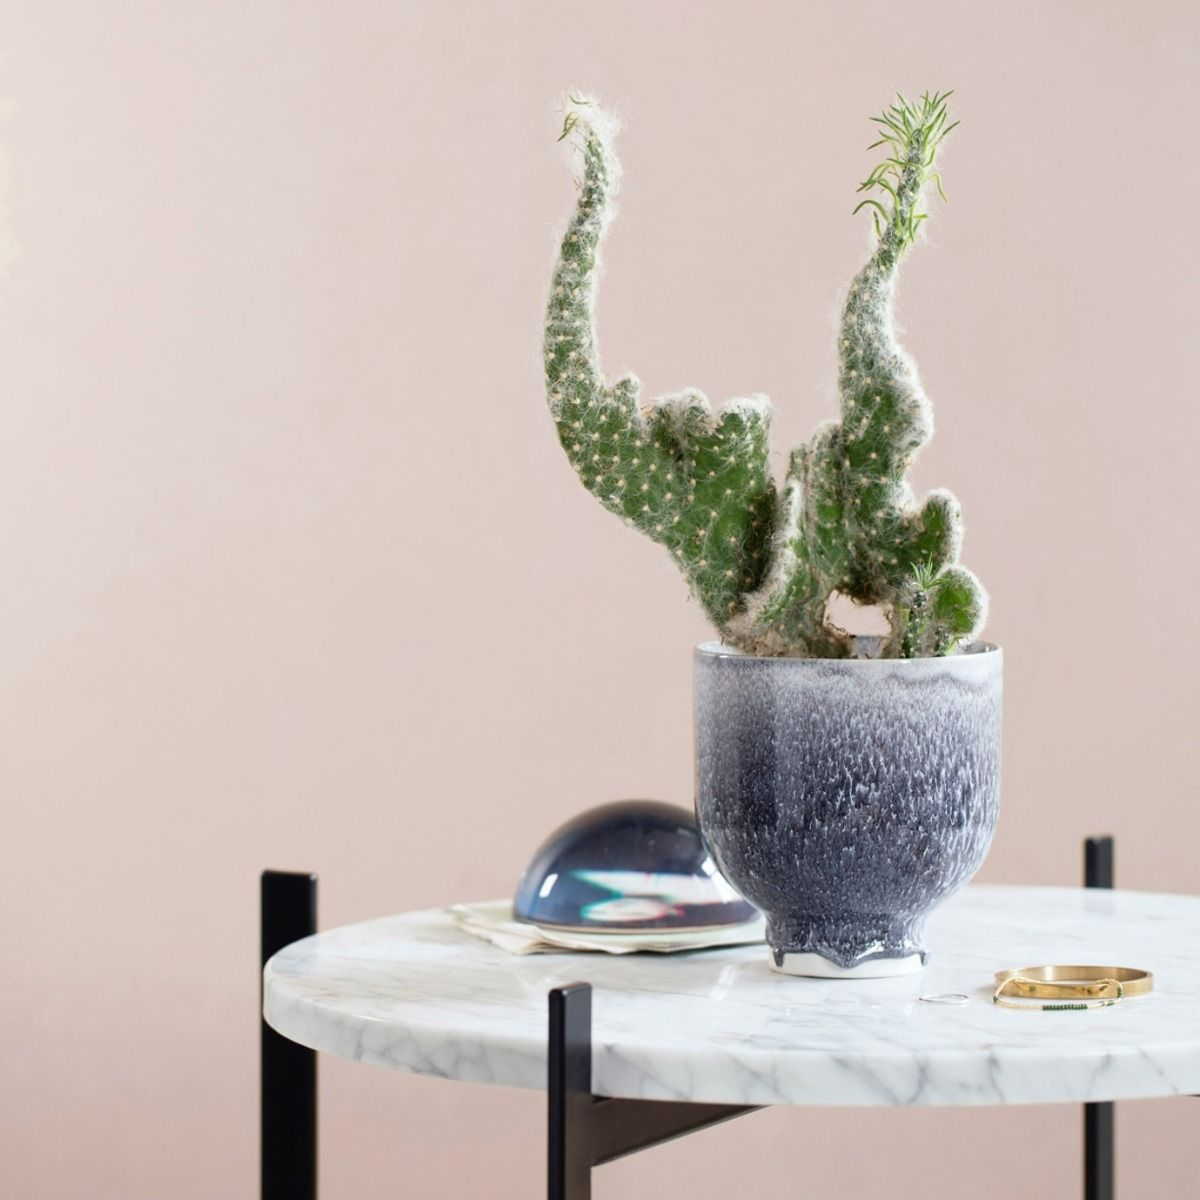 kahler grey unico flower pot with a cactus plant on a white marble table with a pink wall behind